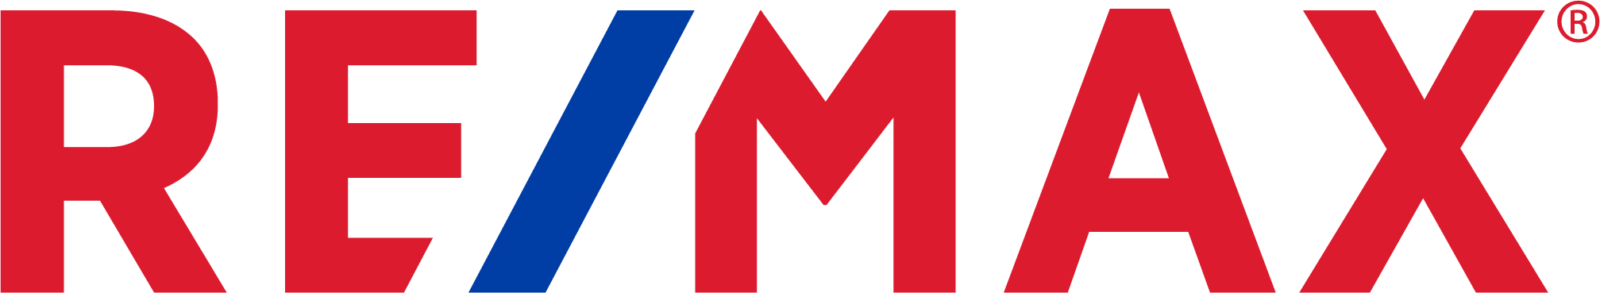 RE/MAX Real Estate Mountain View